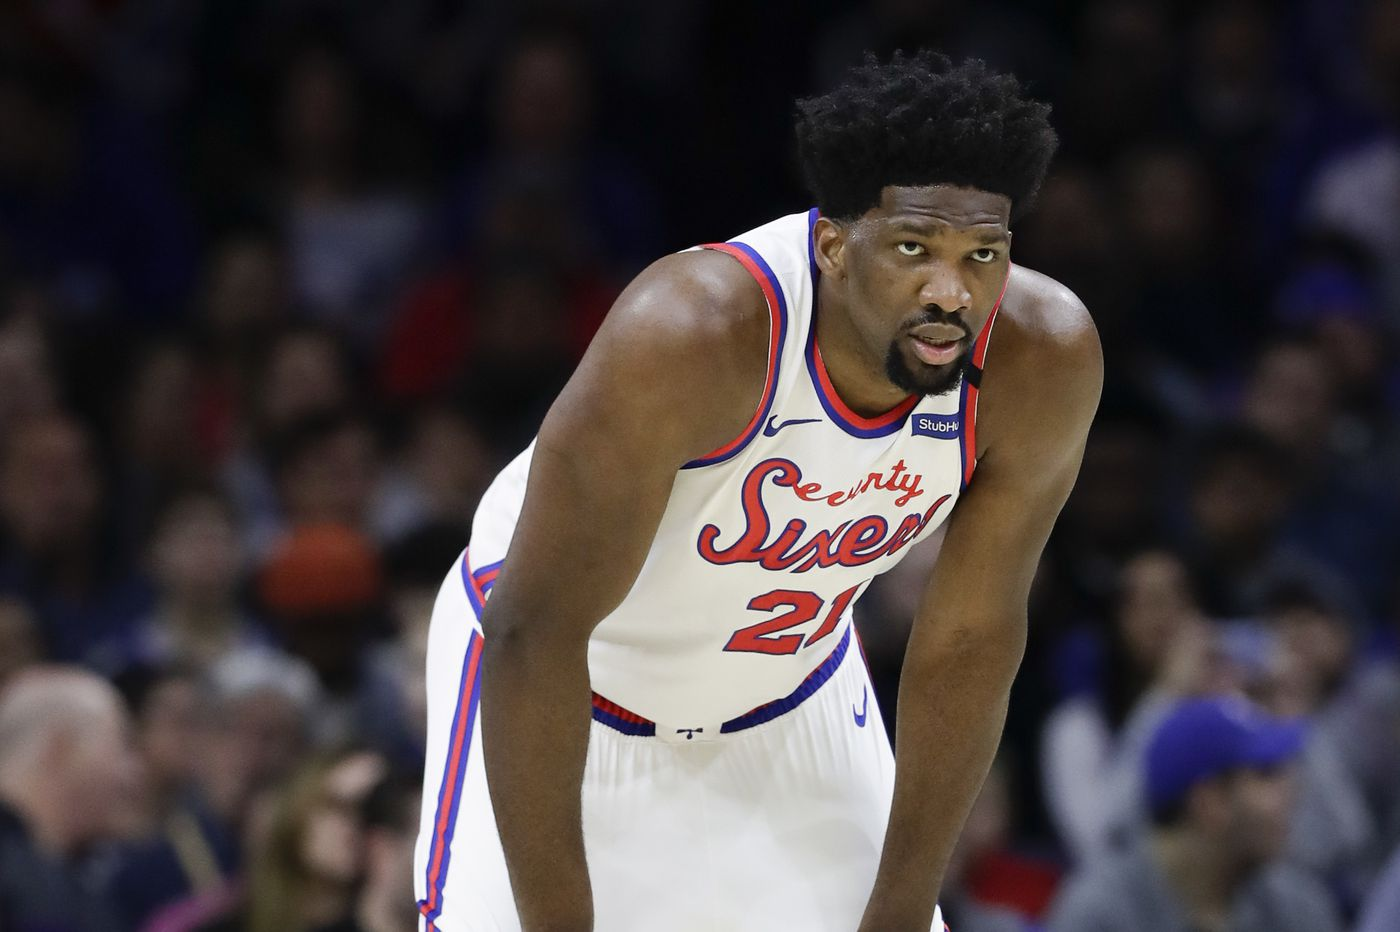 Sixers' Joel Embiid: 'I believe I can carry the team'